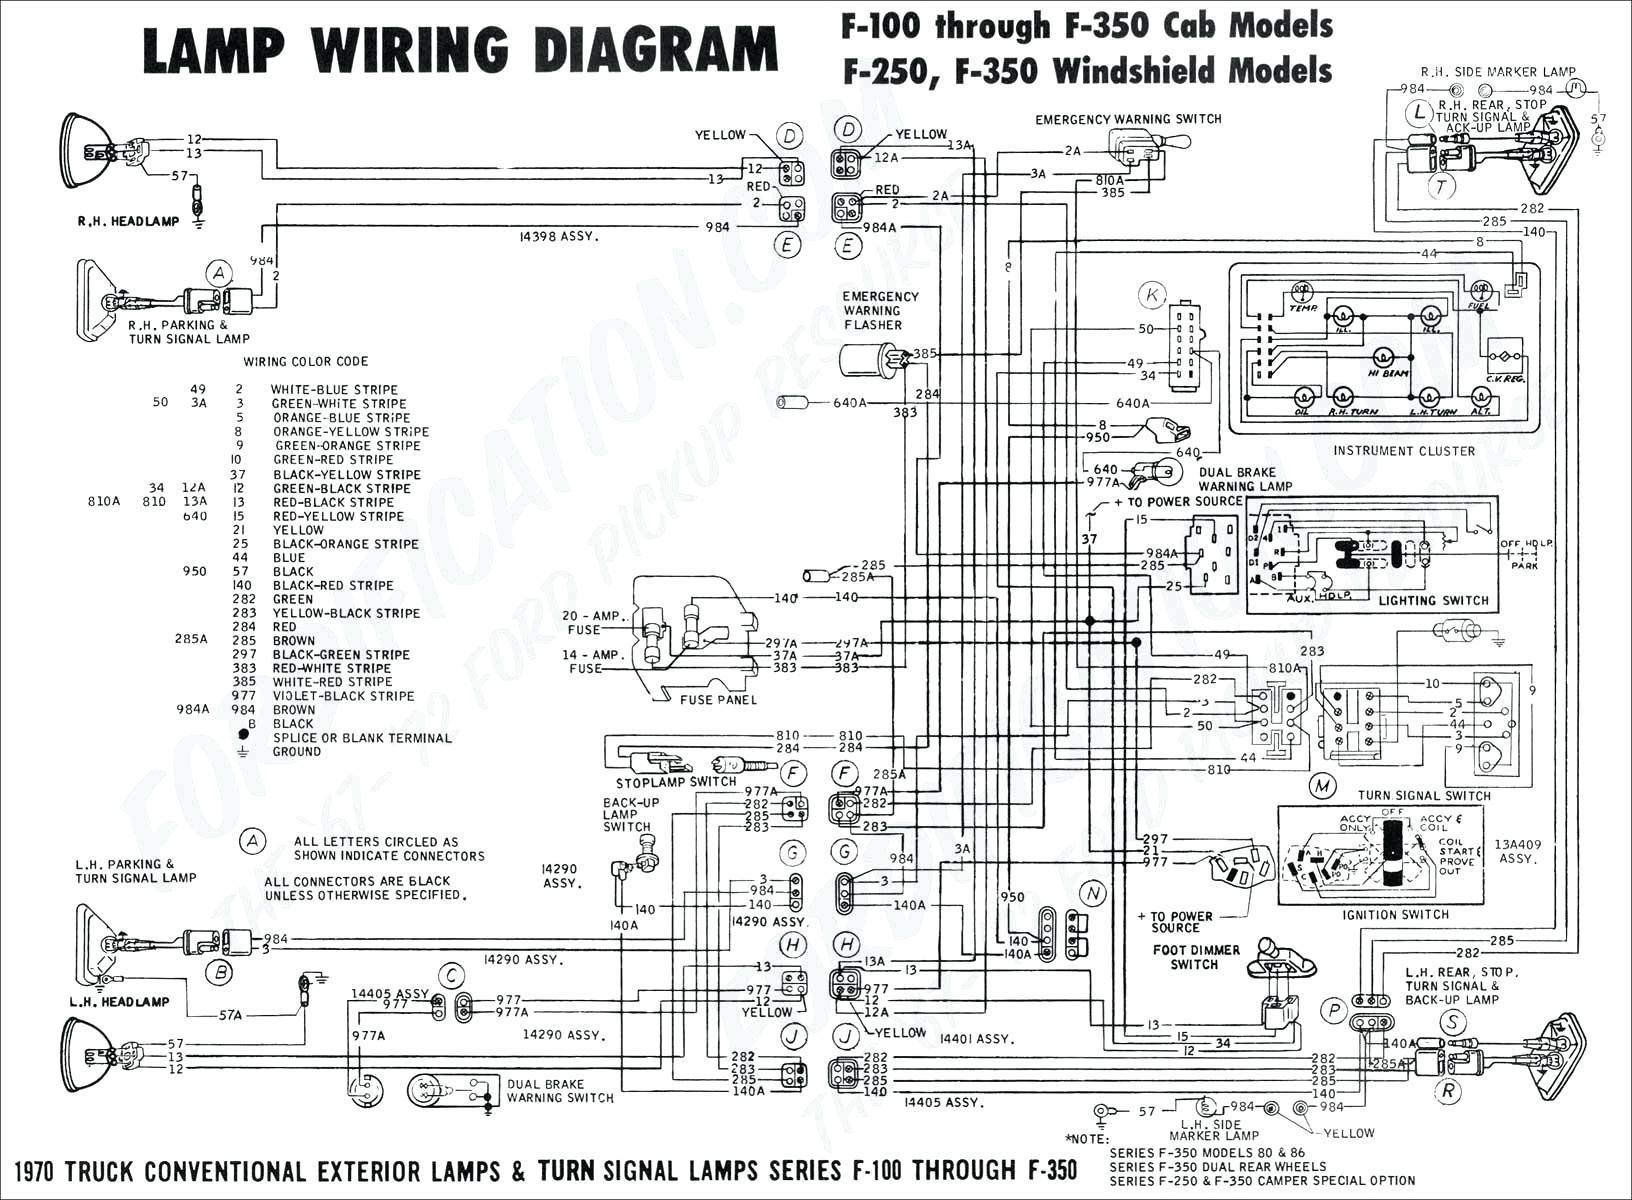 1994 chevy truck brake light wiring diagram collection wiring 1994 chevy truck brake light wiring diagram collection wiring diagram brake lights fresh brake lights